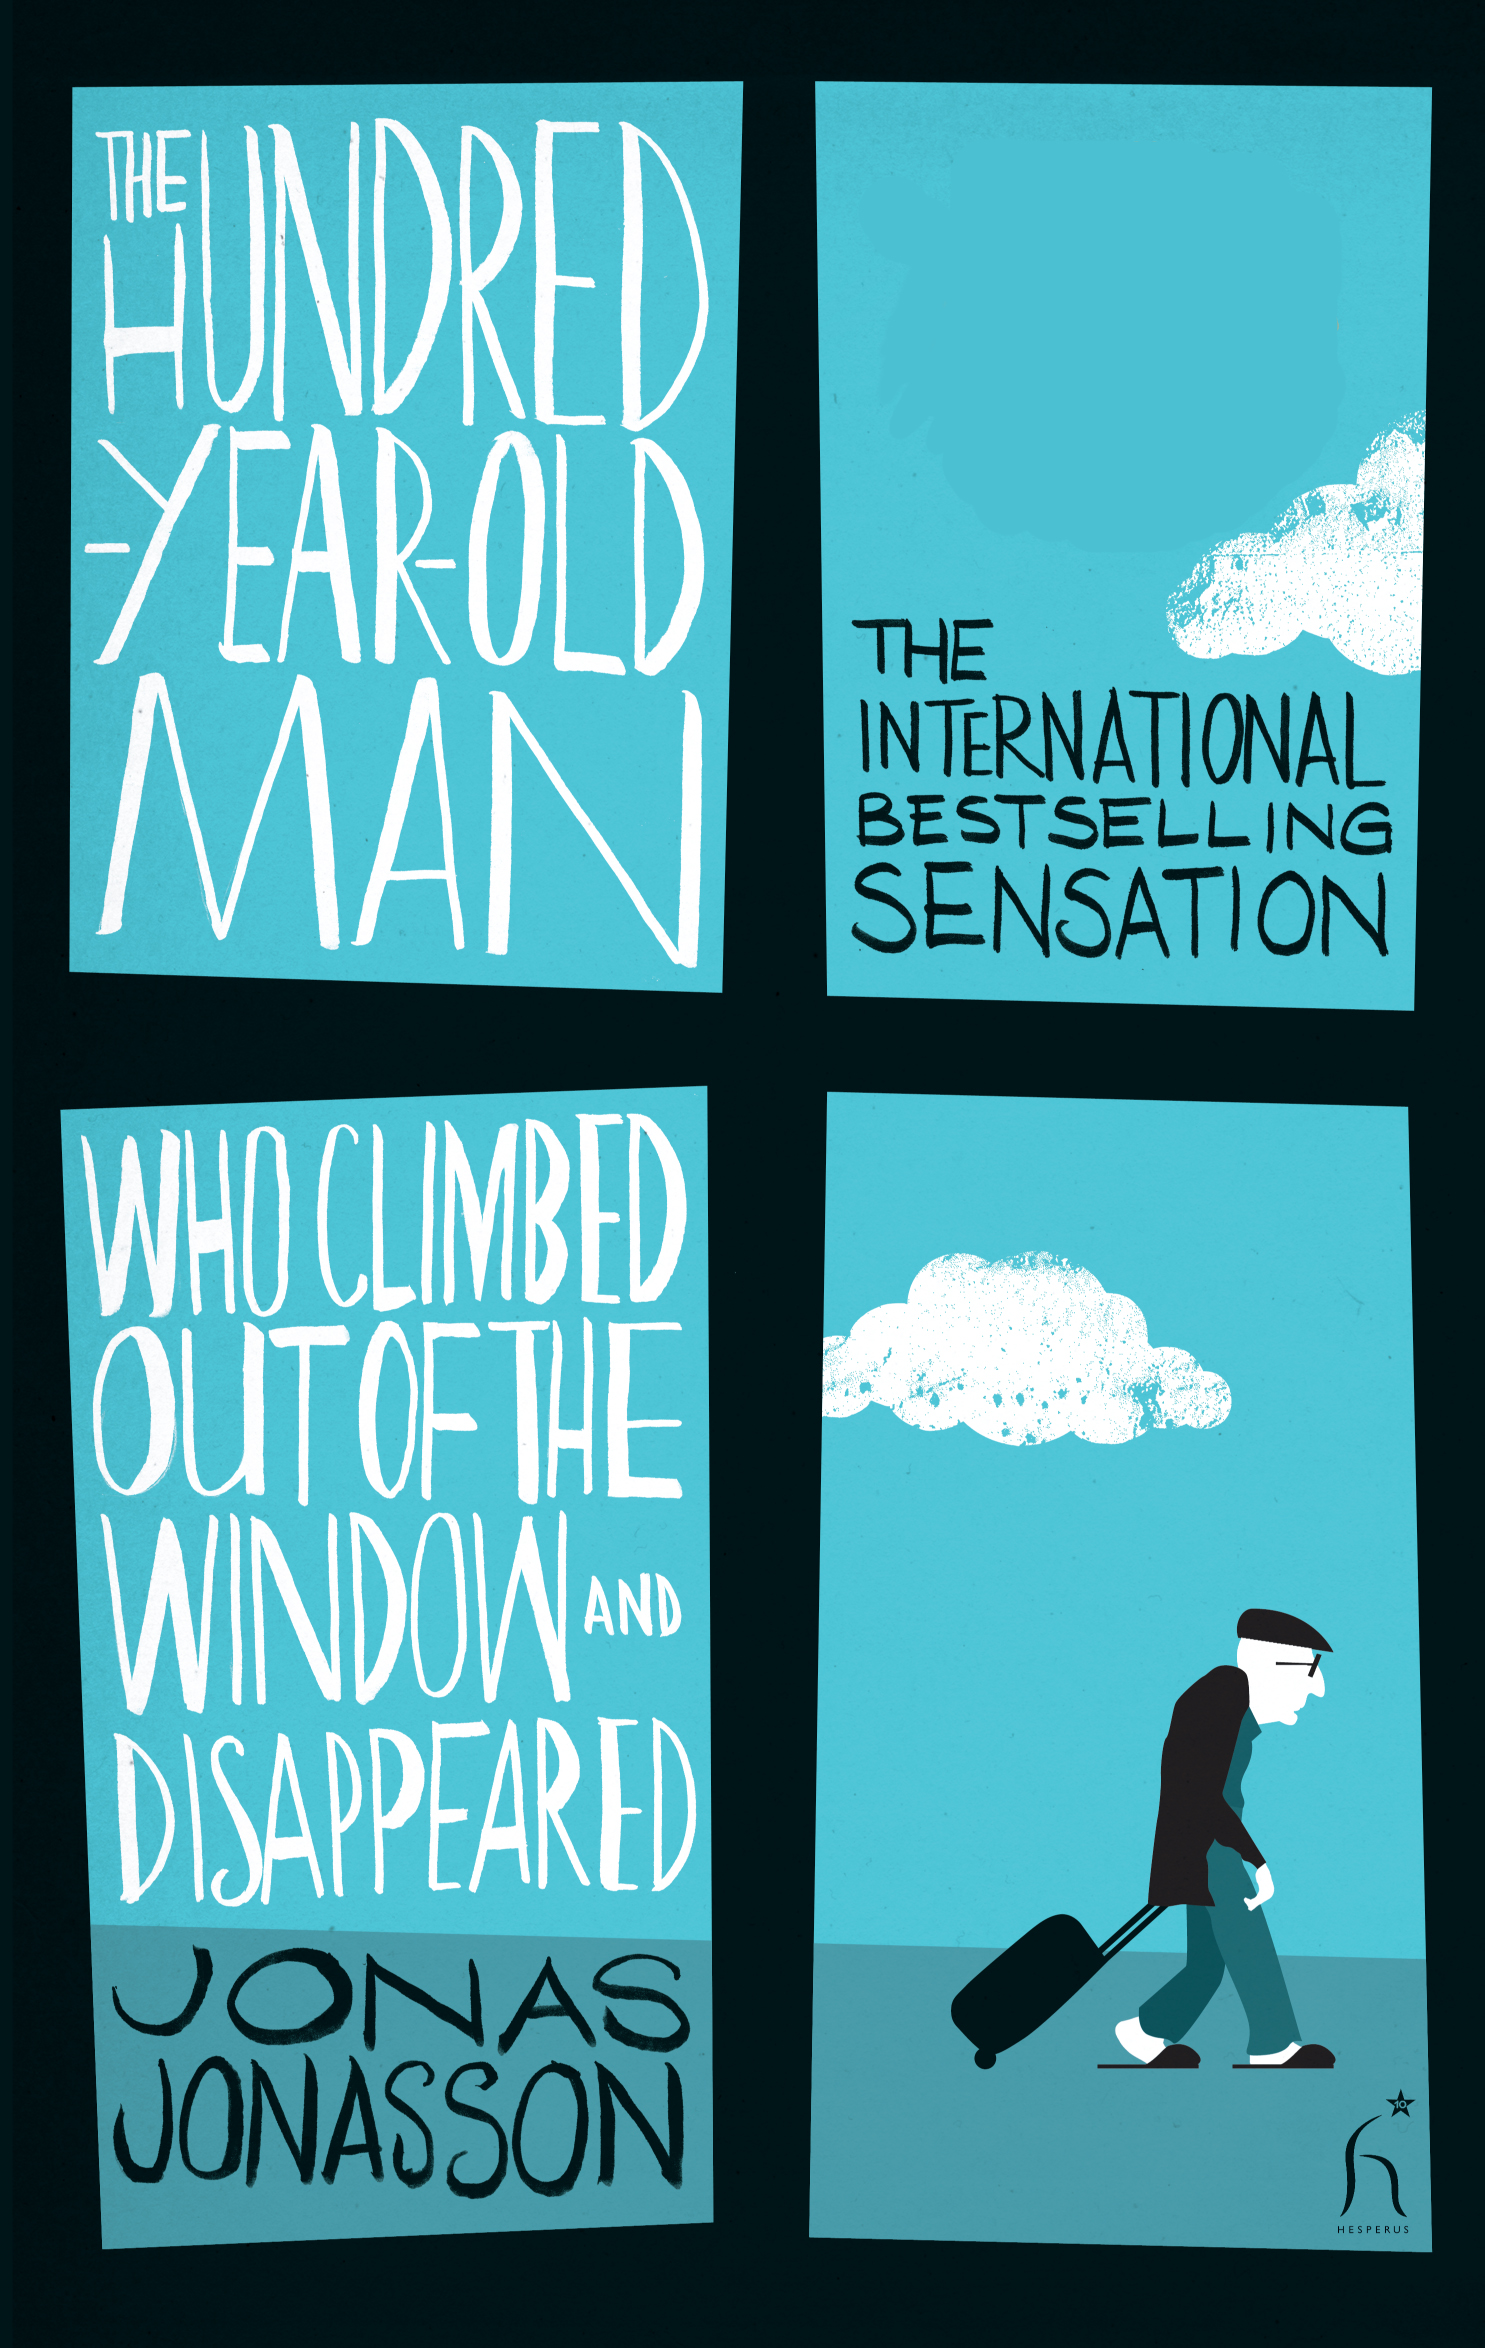 The Hundred- Year Old Man Who Climbed Out of the Window and Disappeared by Jonas Jonasson